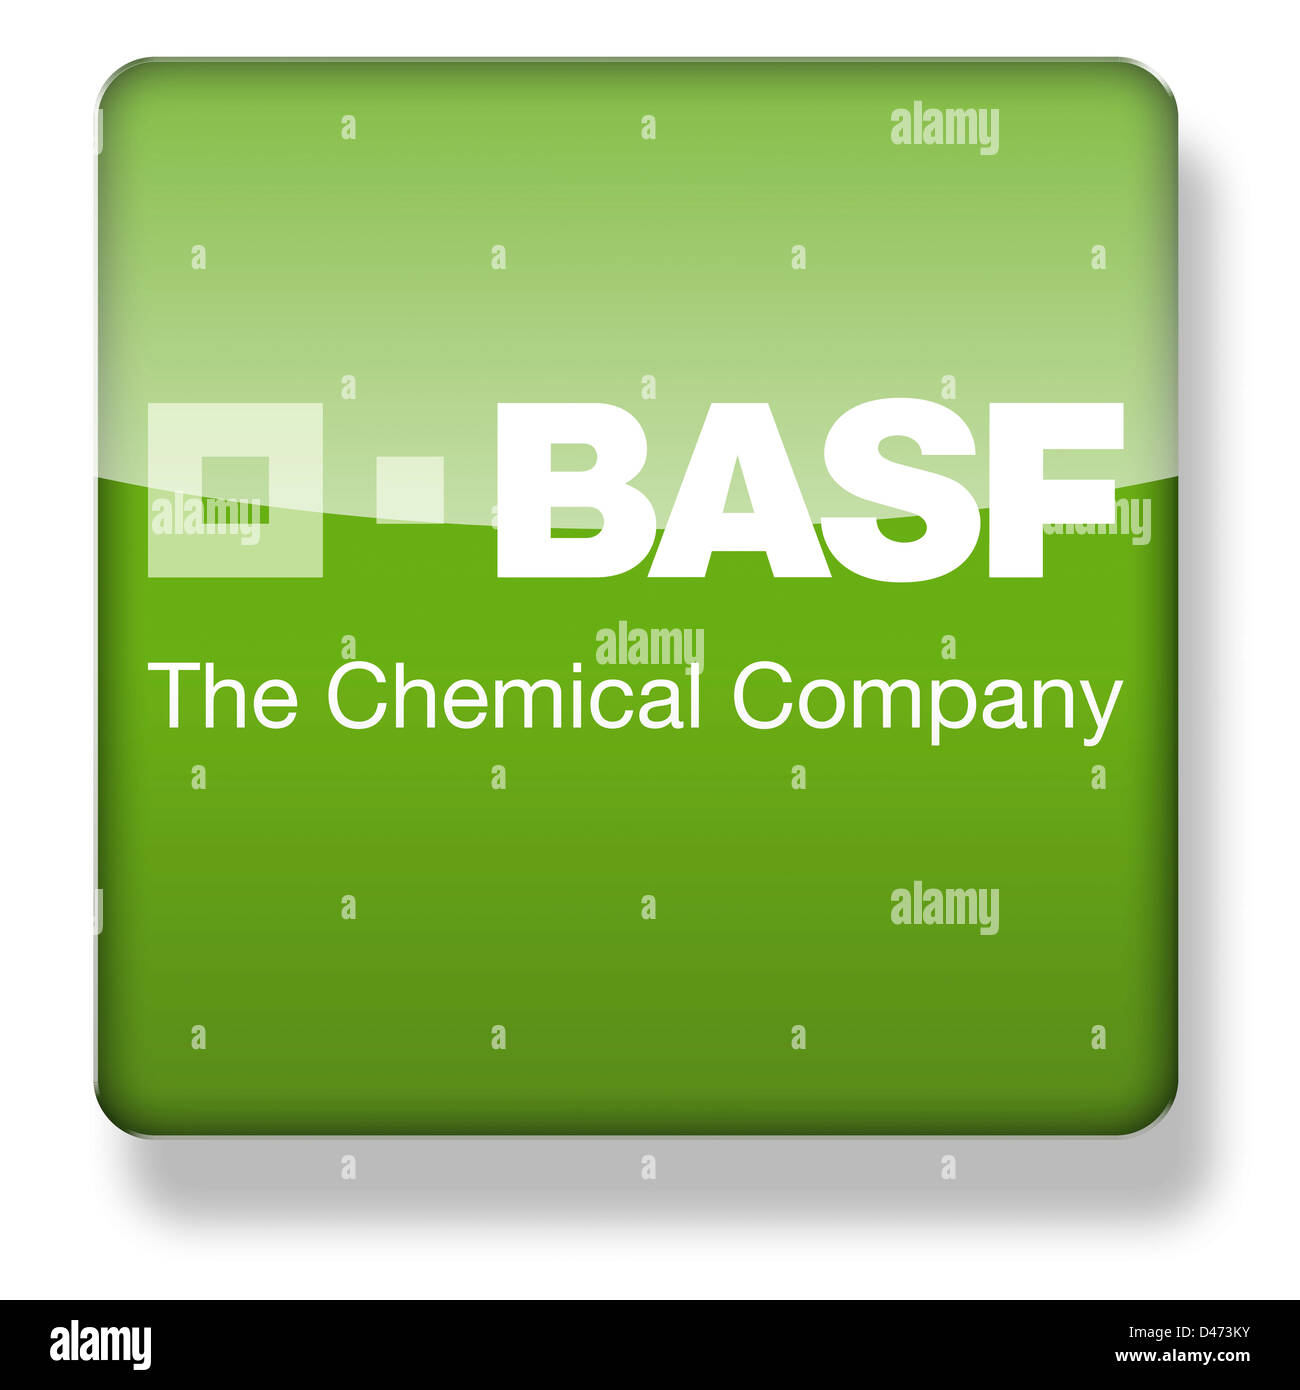 BASF logo as an app icon  Clipping path included Stock Photo